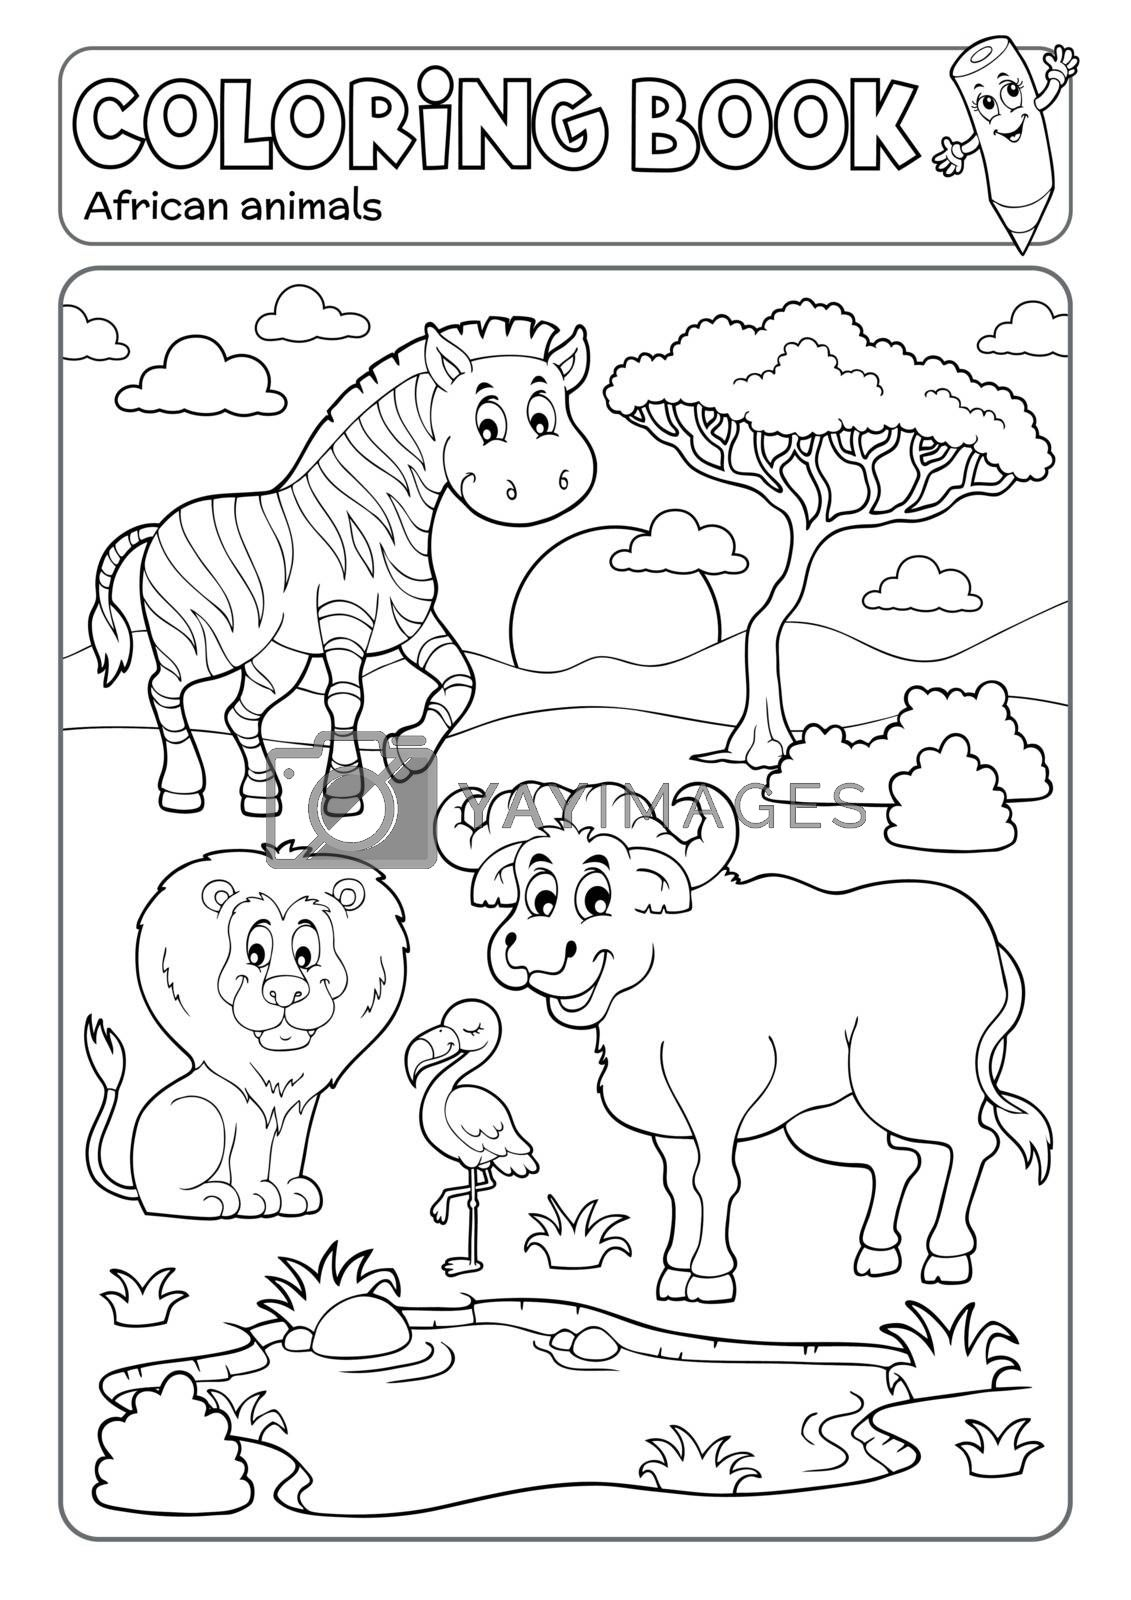 Coloring book African fauna 5 - eps10 vector illustration.